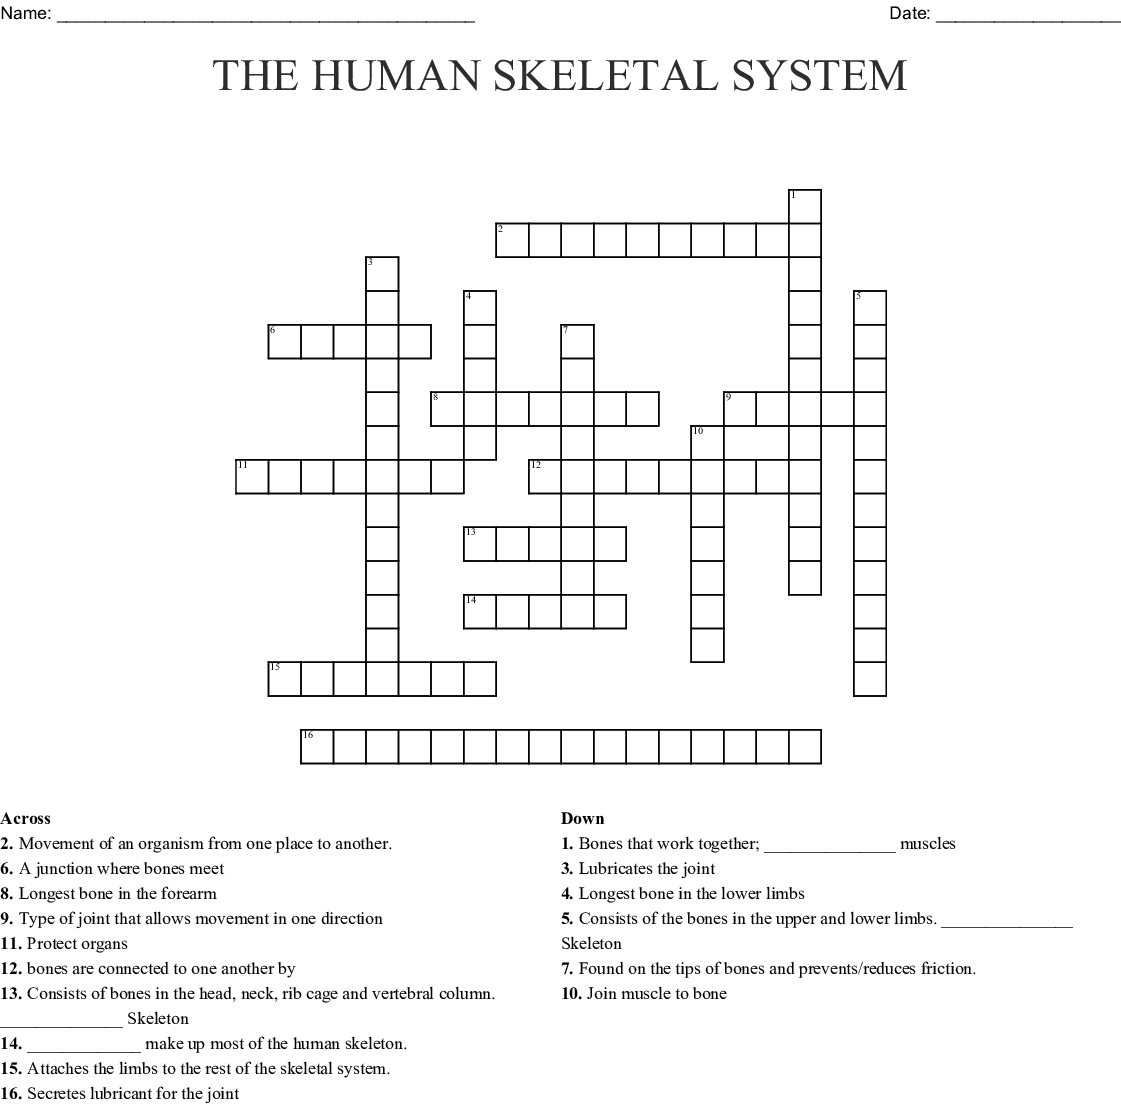 Integumentary Skeletal And Muscular System Crossword